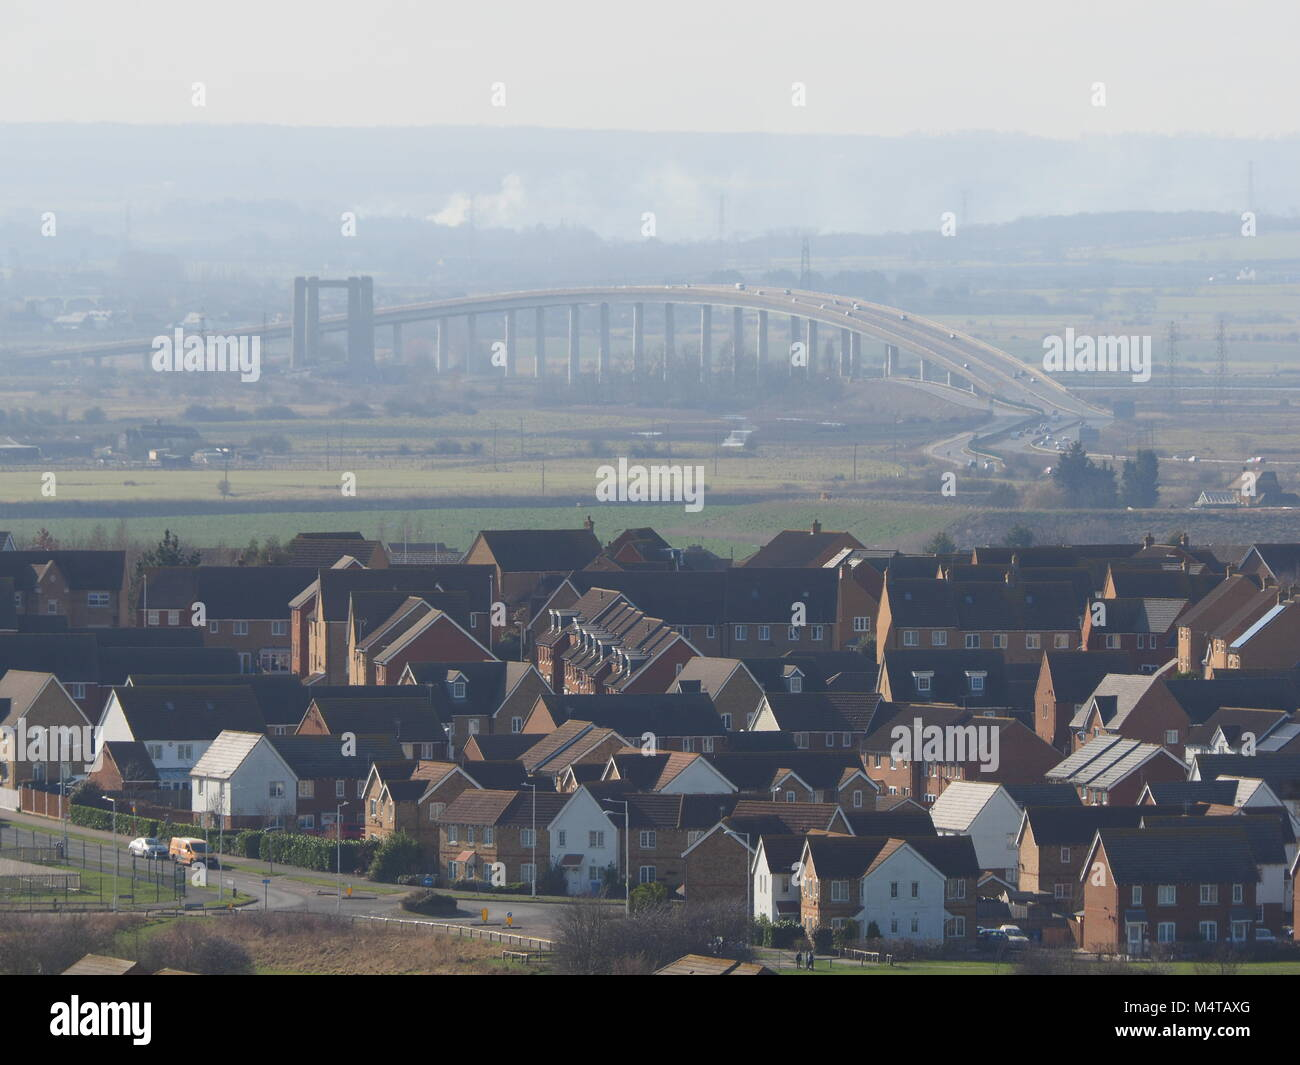 Minster on sea, Kent, UK. 18th Feb, 2018. UK Weather: another sunny and warm day in Minster on sea on the Isle of Sheppey in north Kent. The Sheppey Crossing. Temp: 10c. Credit: James Bell/Alamy Live News Stock Photo